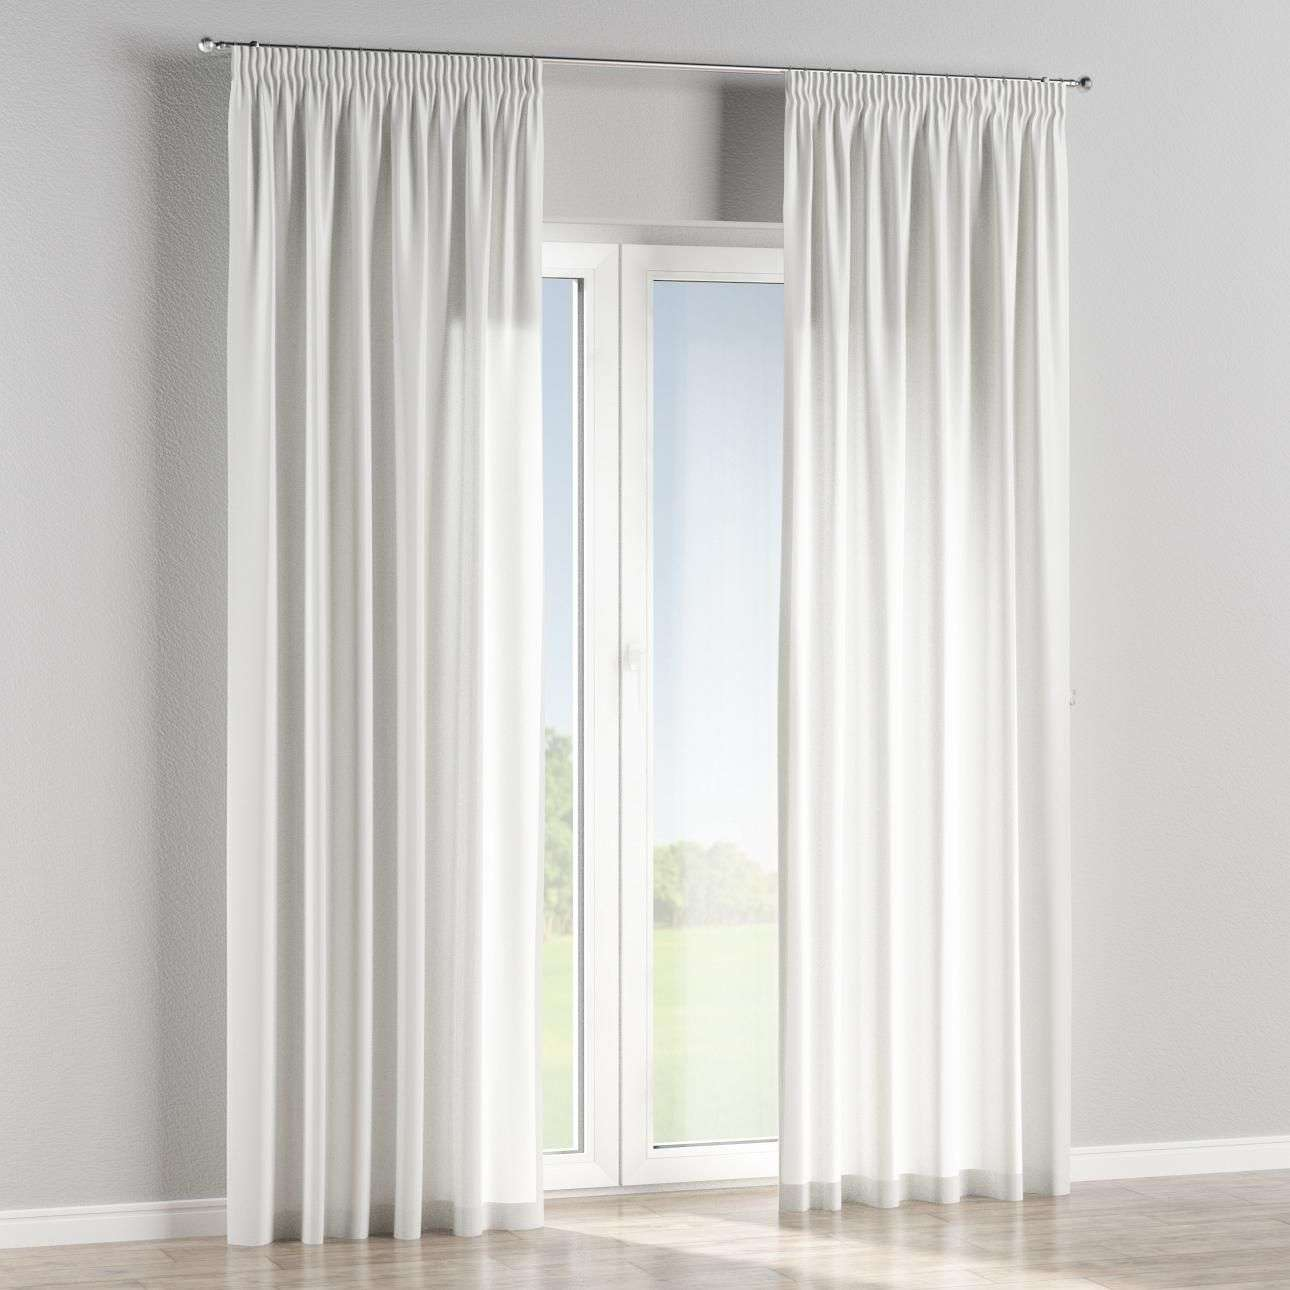 Pencil pleat curtains in collection Bristol, fabric: 125-48